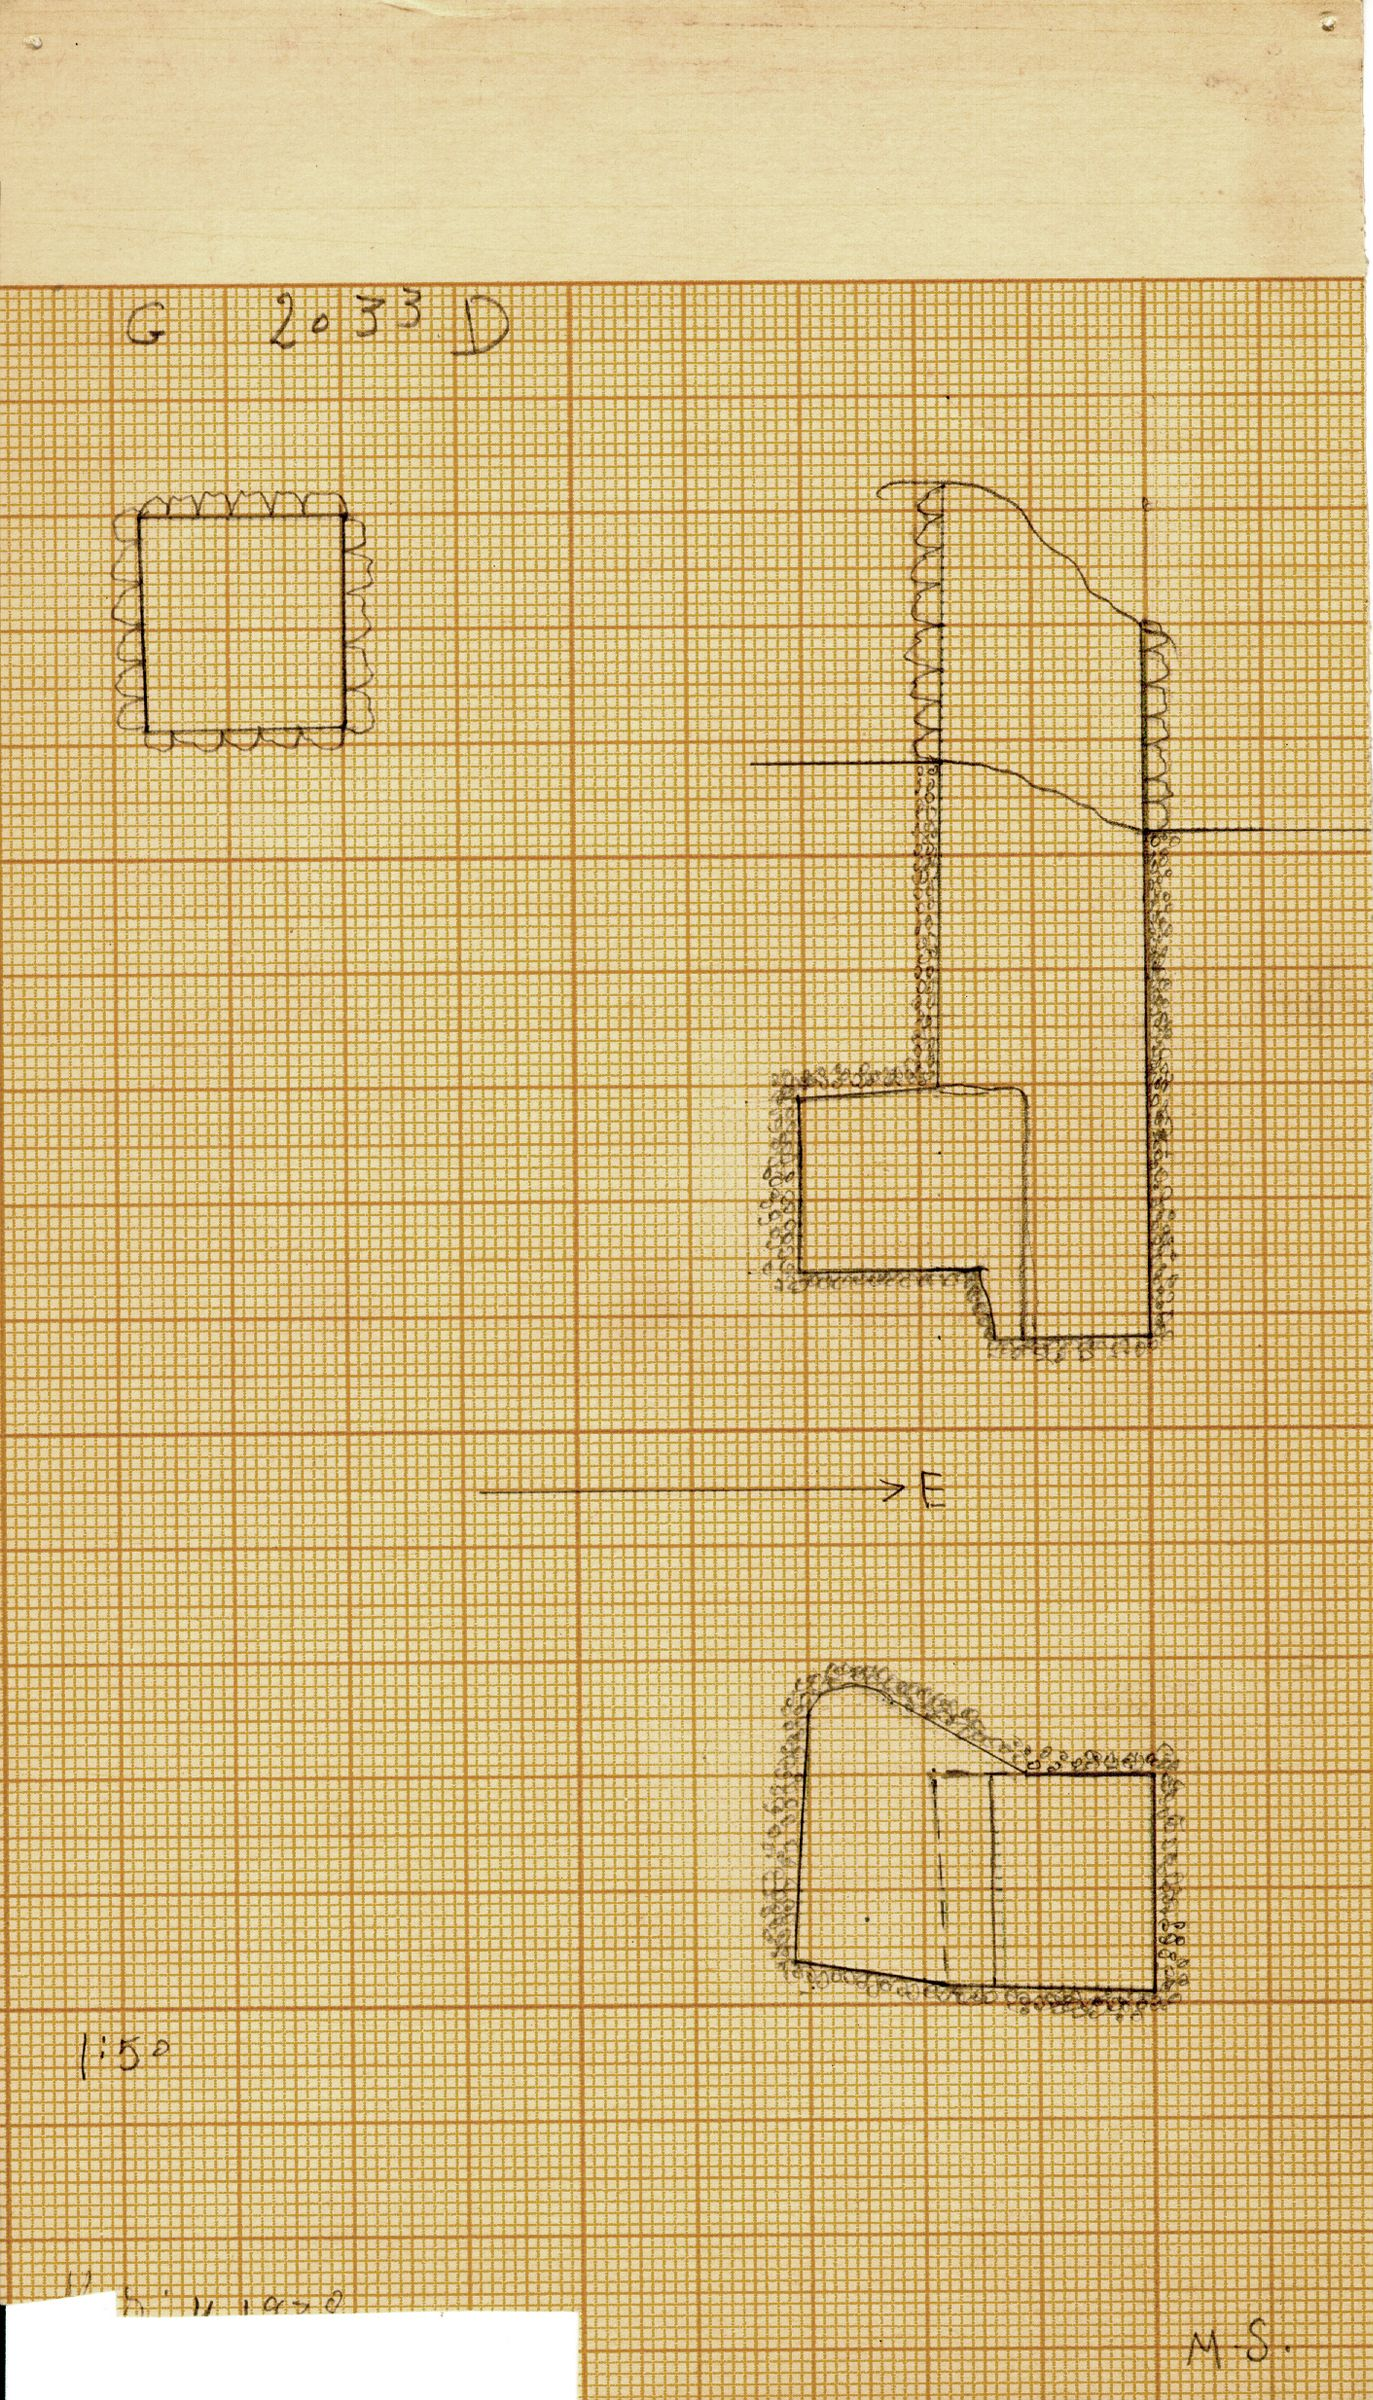 Maps and plans: G 2033, Shaft D